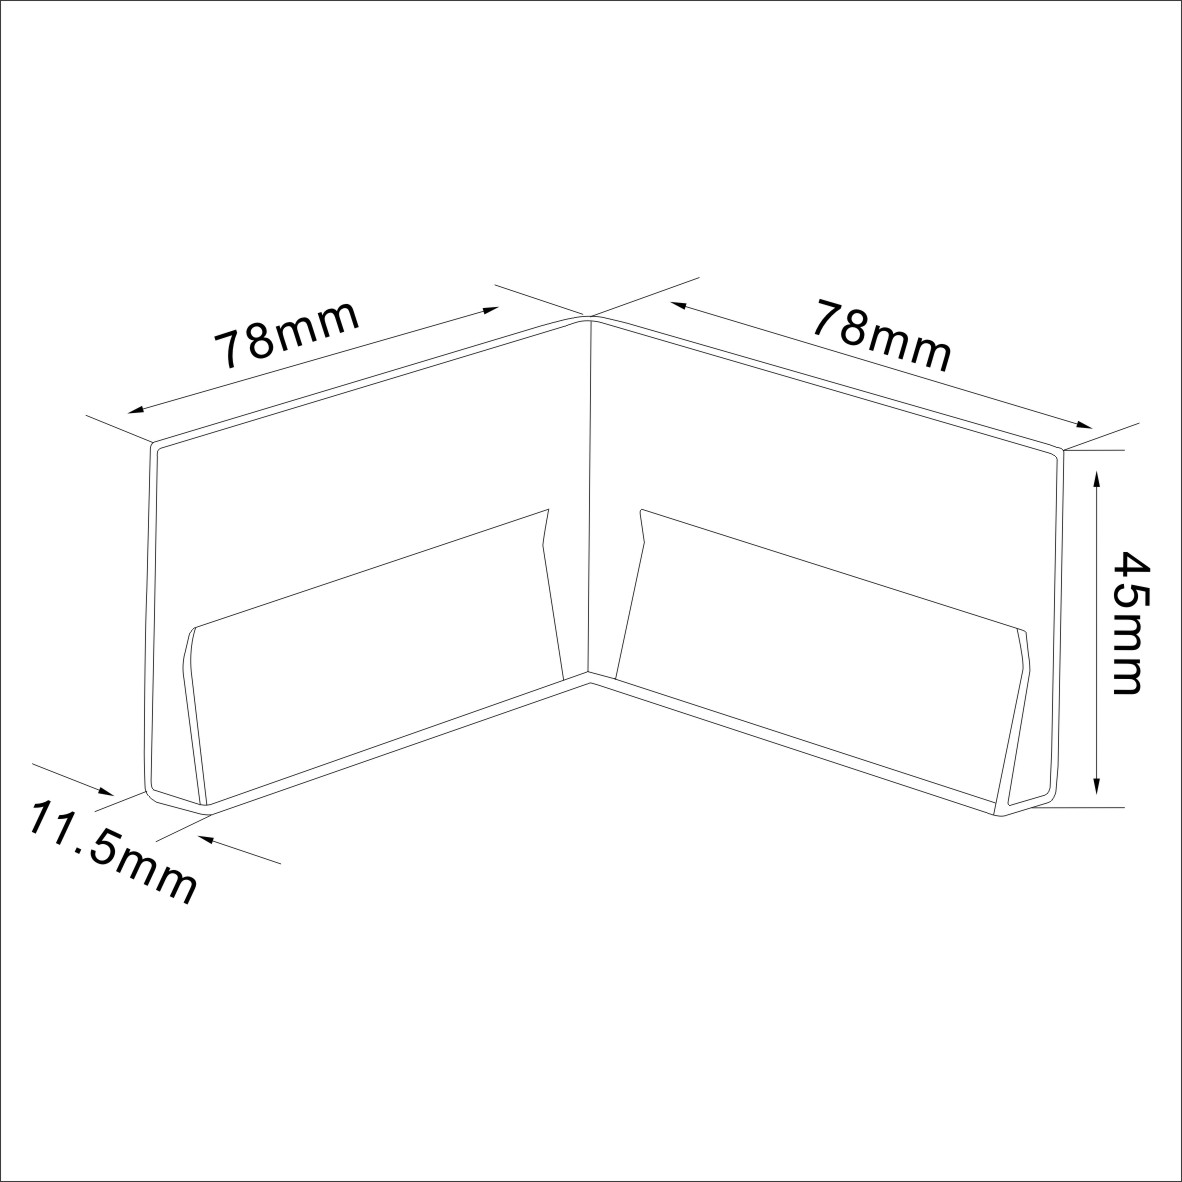 Protective Cornered Paper Crystal Latching Shelf Protagonist